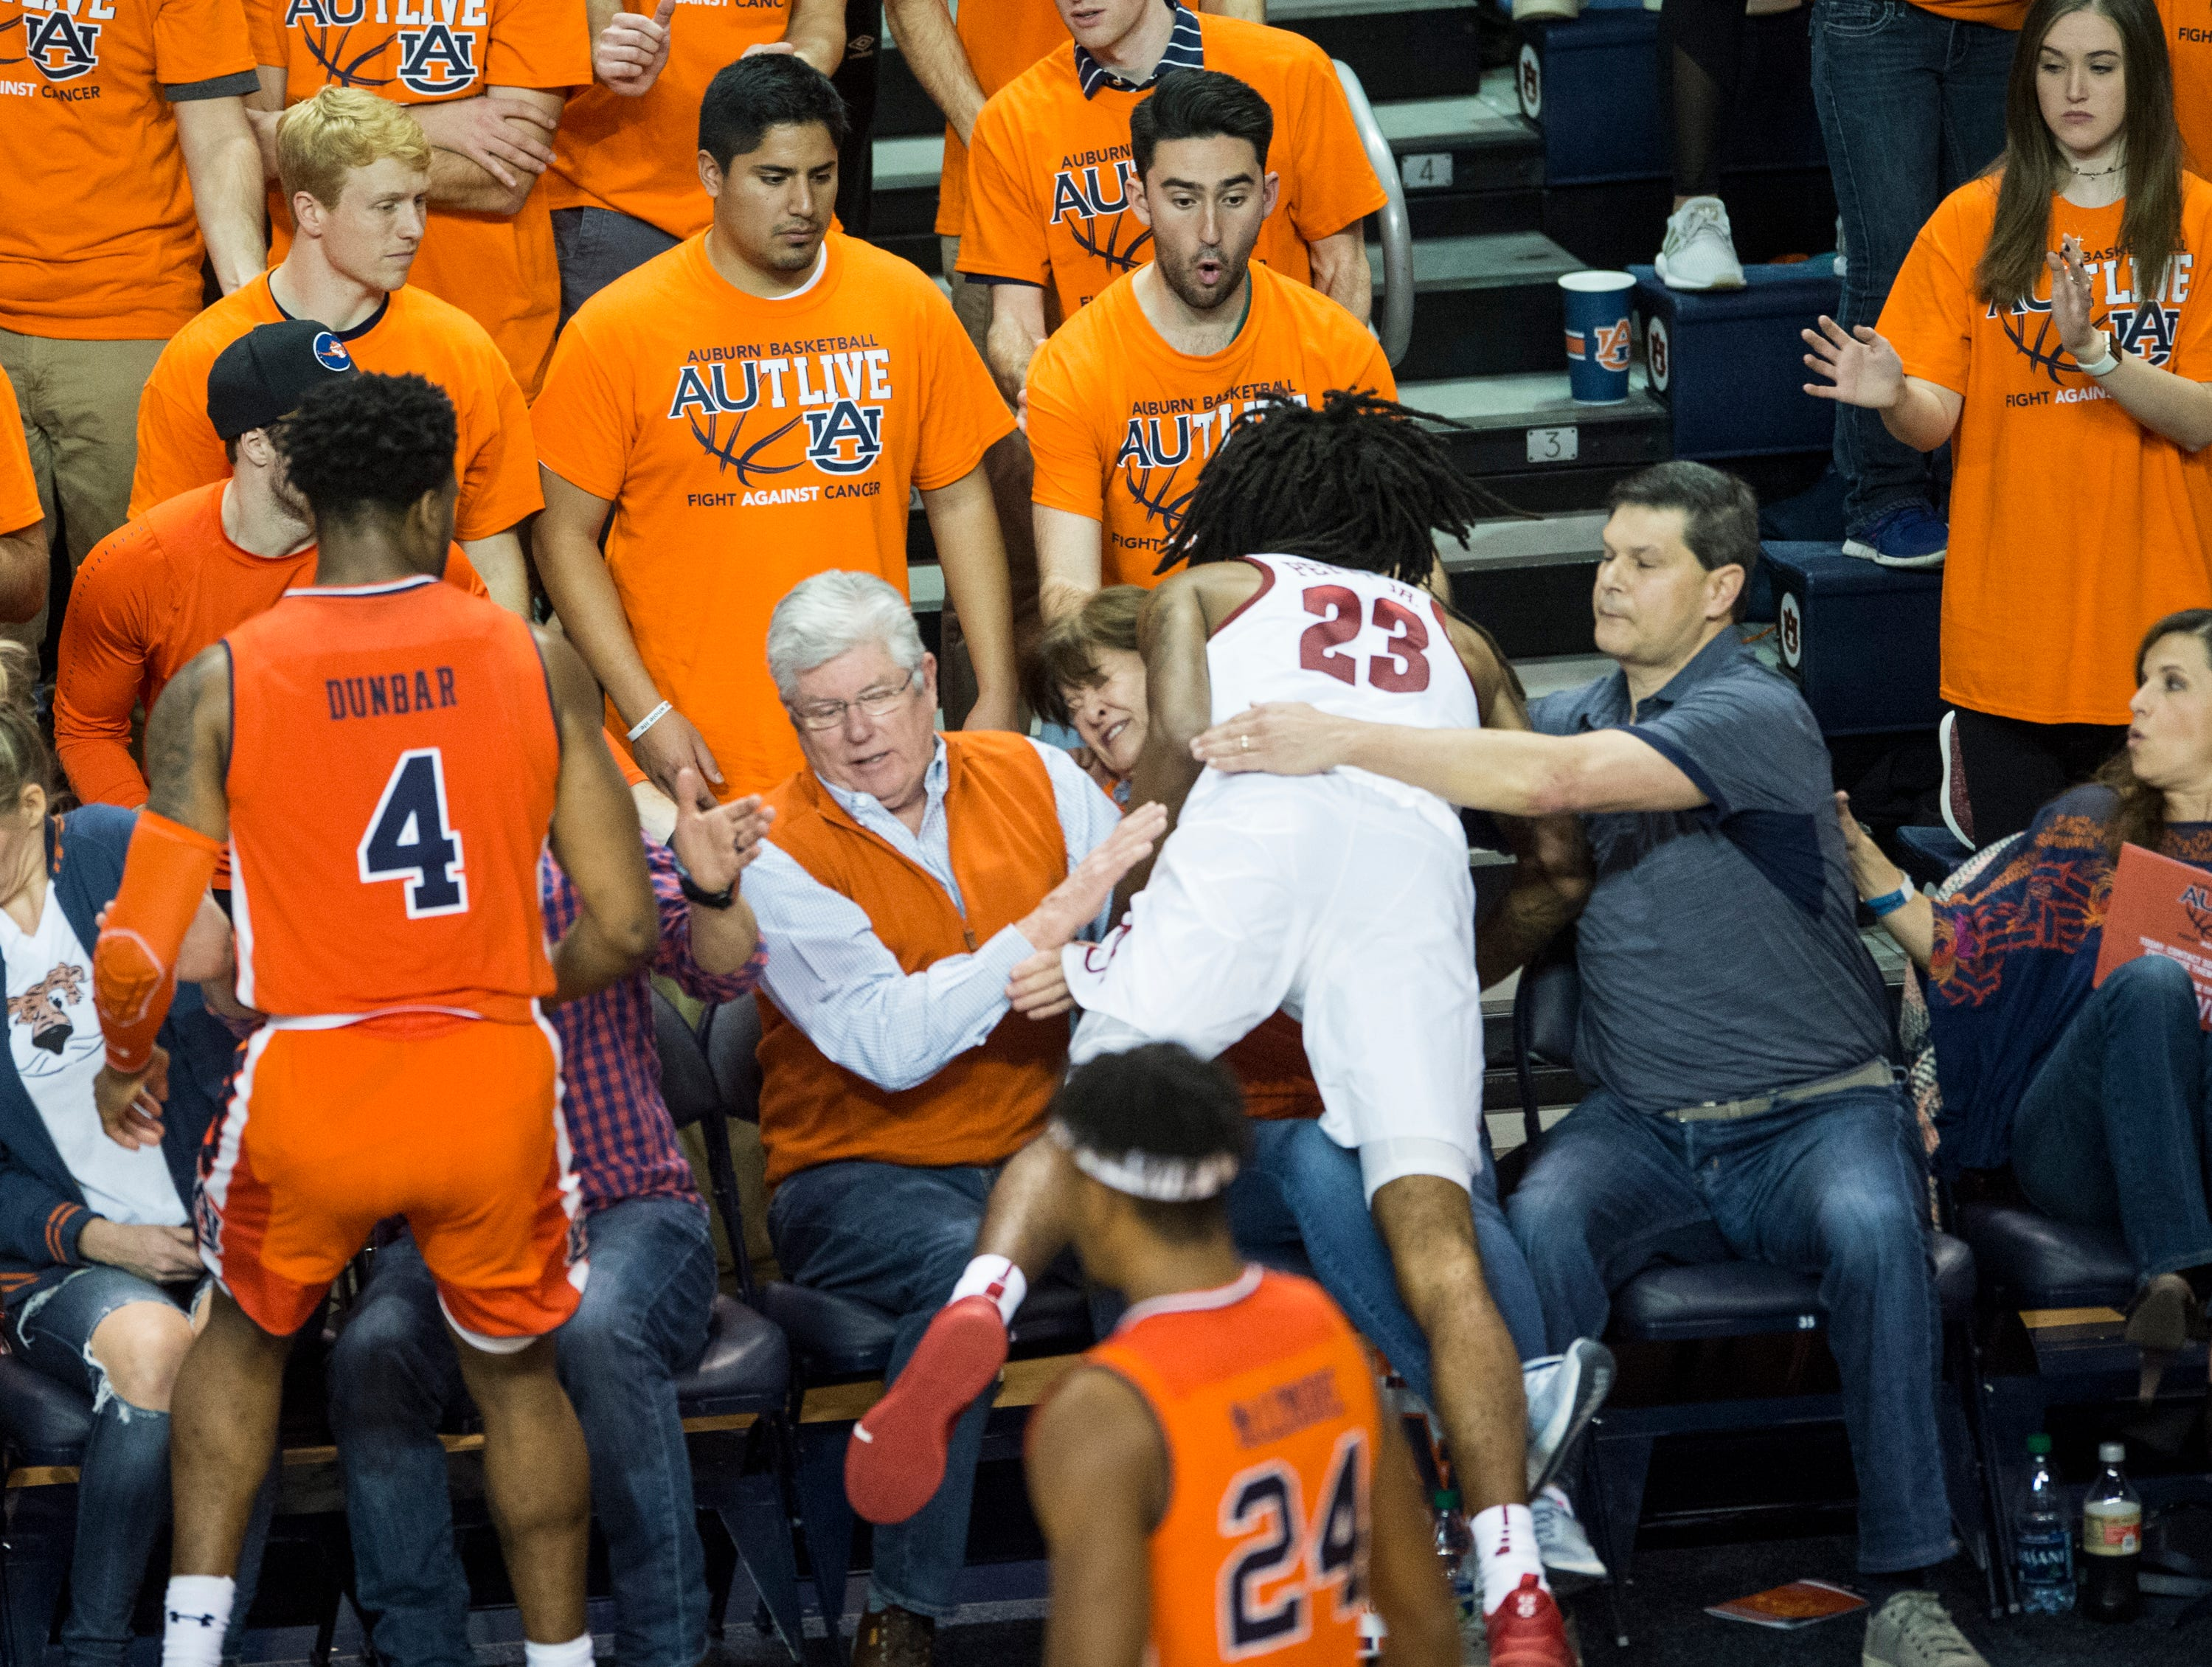 Alabama guard John Petty (23) lands on a fan as he attempts to save the ball at Auburn Arena in Auburn, Ala., on Saturday, Feb. 2, 2019. Auburn defeated Alabama 84-63.